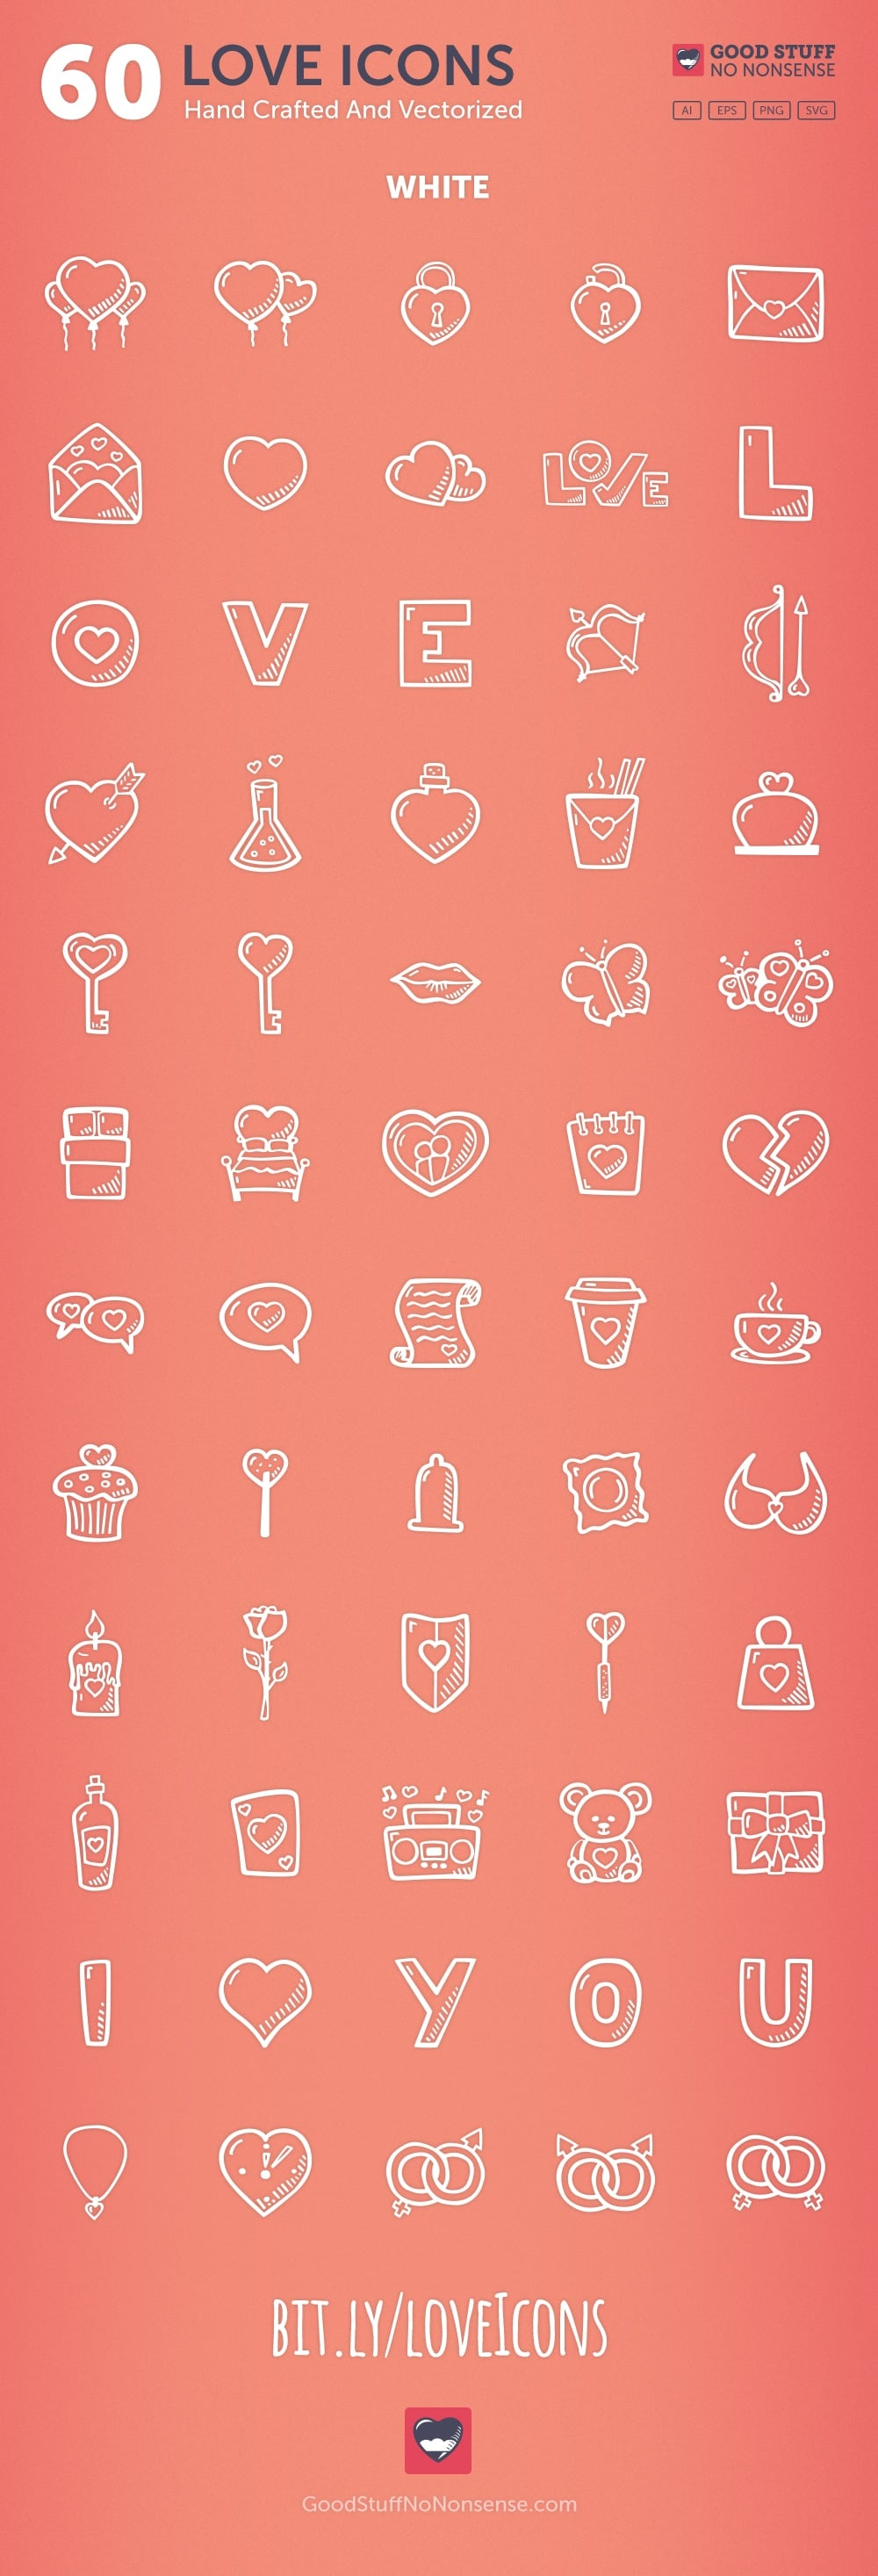 Love Vector Icon Pack Hand Drawn Icons White